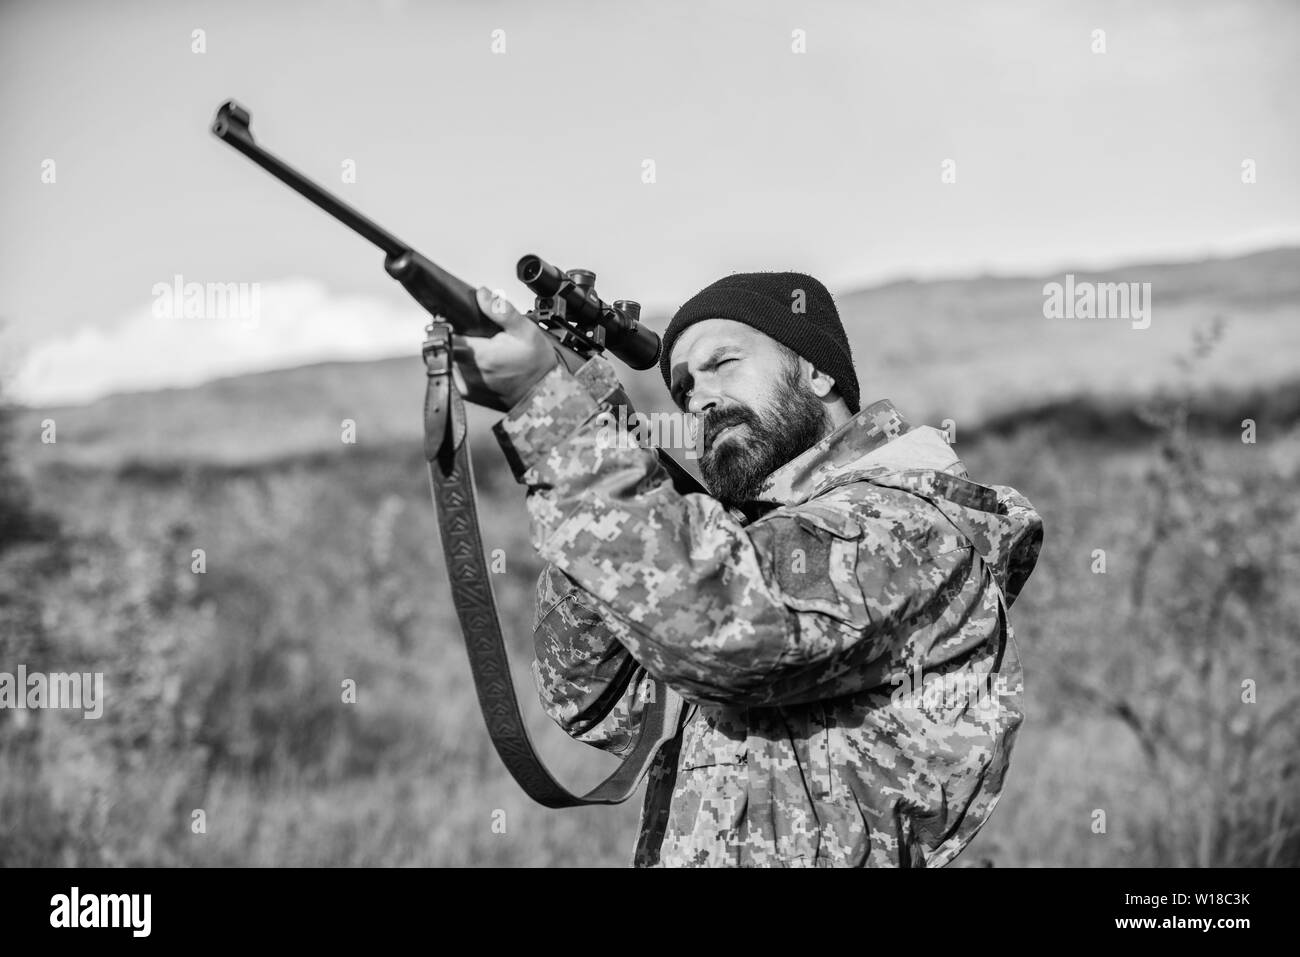 Aiming skills. On my target. Bearded hunter spend leisure hunting. Hunting optics equipment for professionals. Brutal masculine hobby. Man aiming target nature background. Hunter hold rifle aiming. - Stock Image